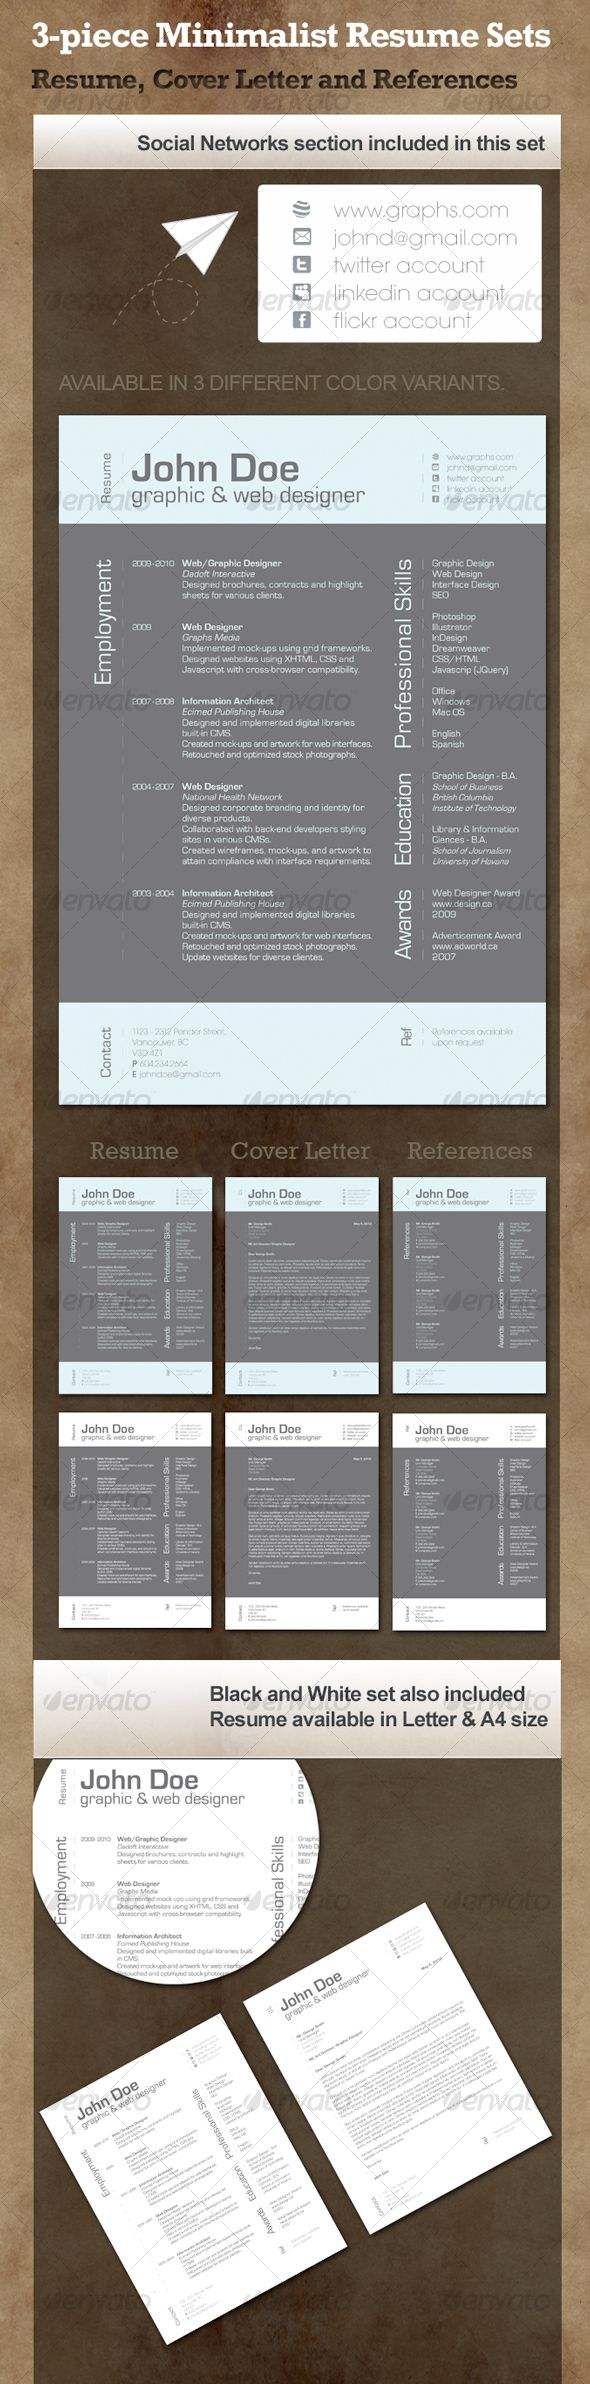 resume 150 best Resume images on Pinterest